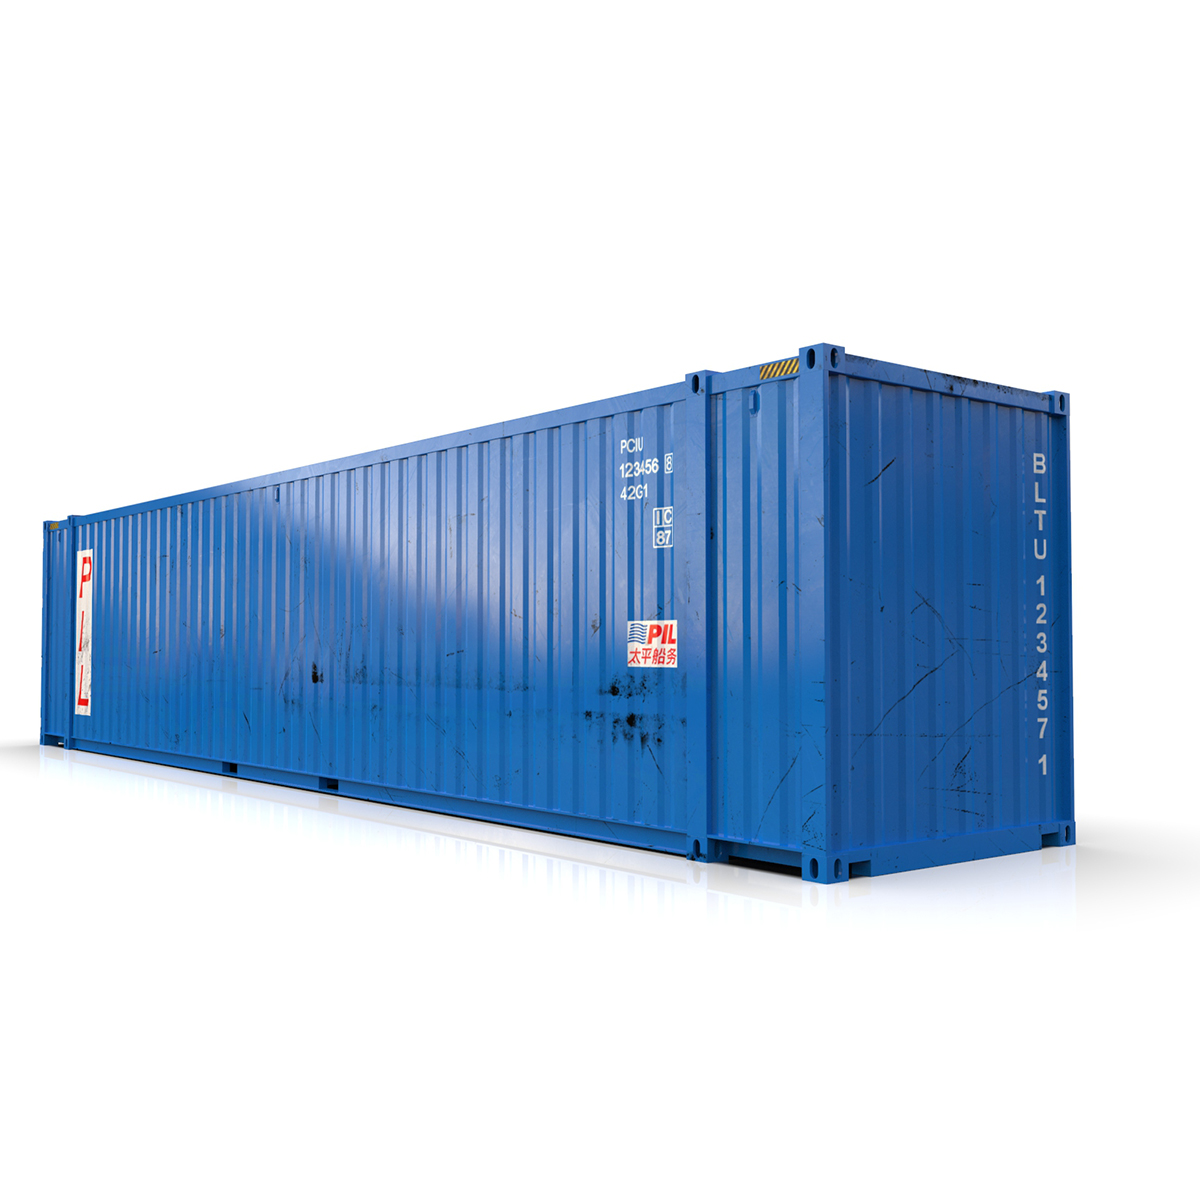 45 feet high cube pil shipping container 3d model max fbx ma mb texture obj 278442